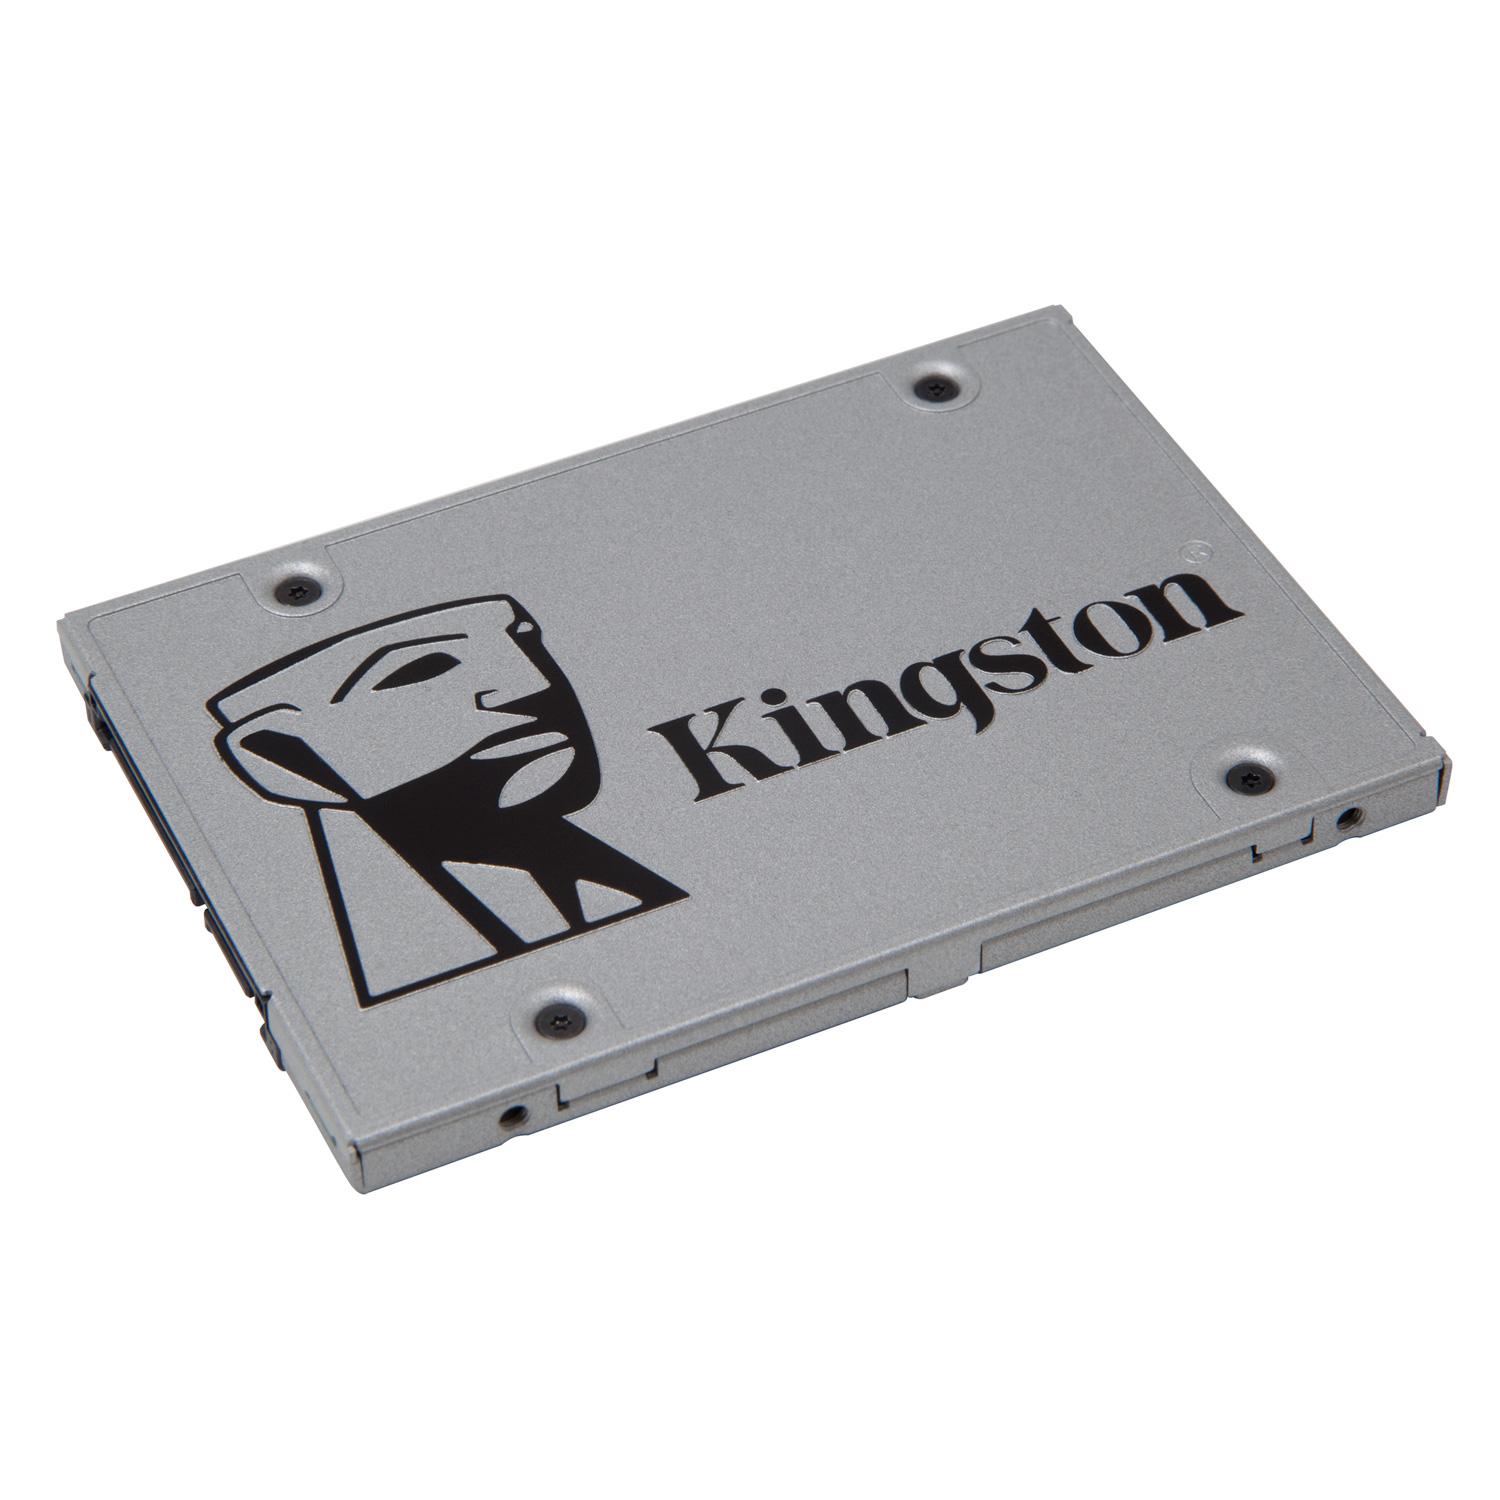 "Disque SSD Kingston SSD UV400 480 Go SSD 480 Go 2.5"" 7mm Serial ATA 6Gb/s"